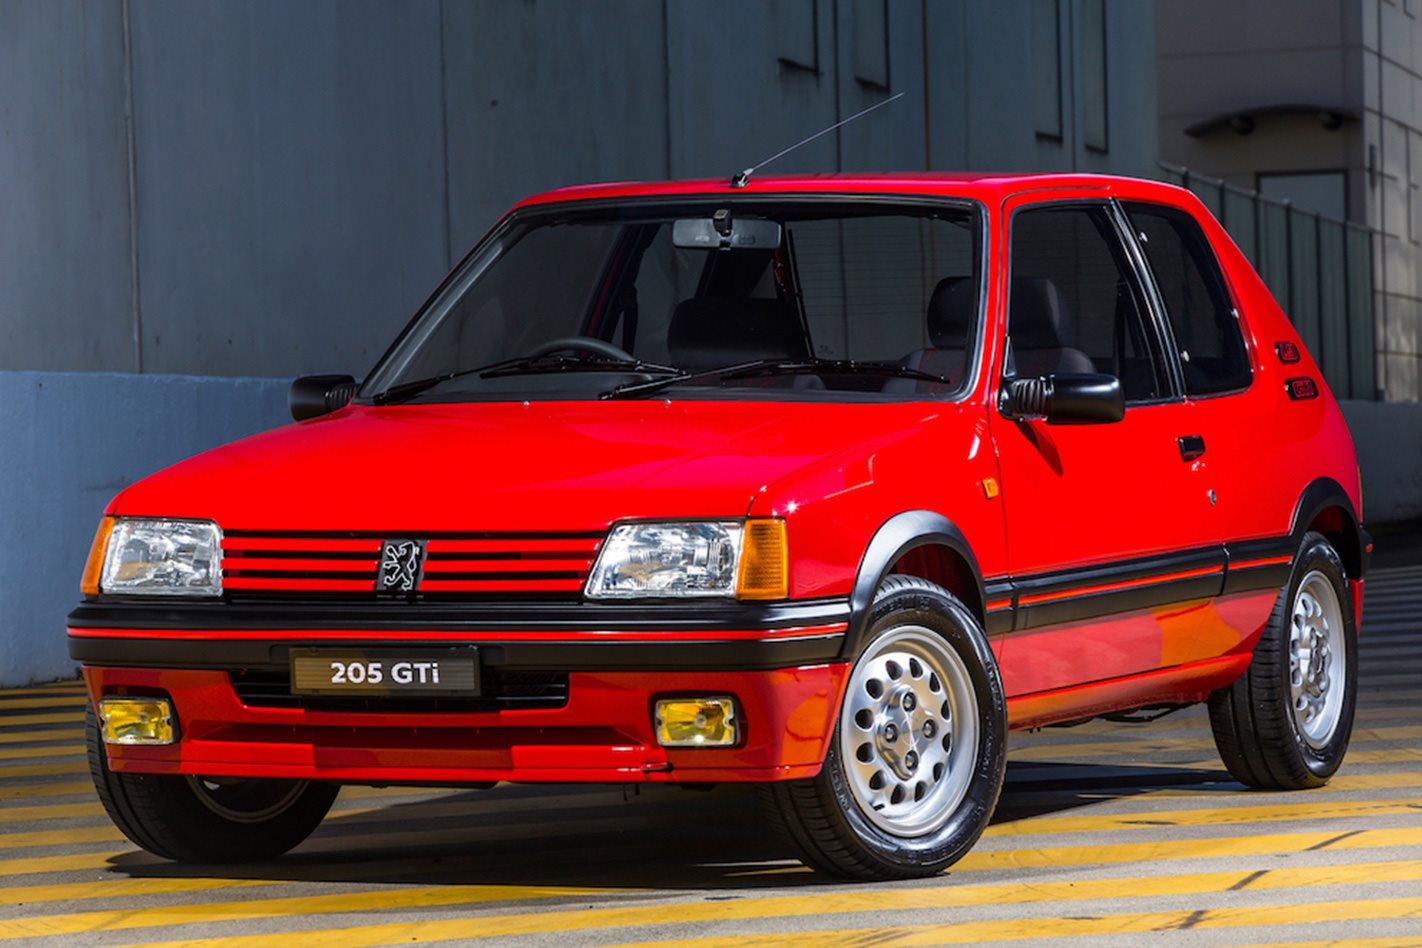 My Kia Performance >> Peugeot 205 GTI sells for $53,000